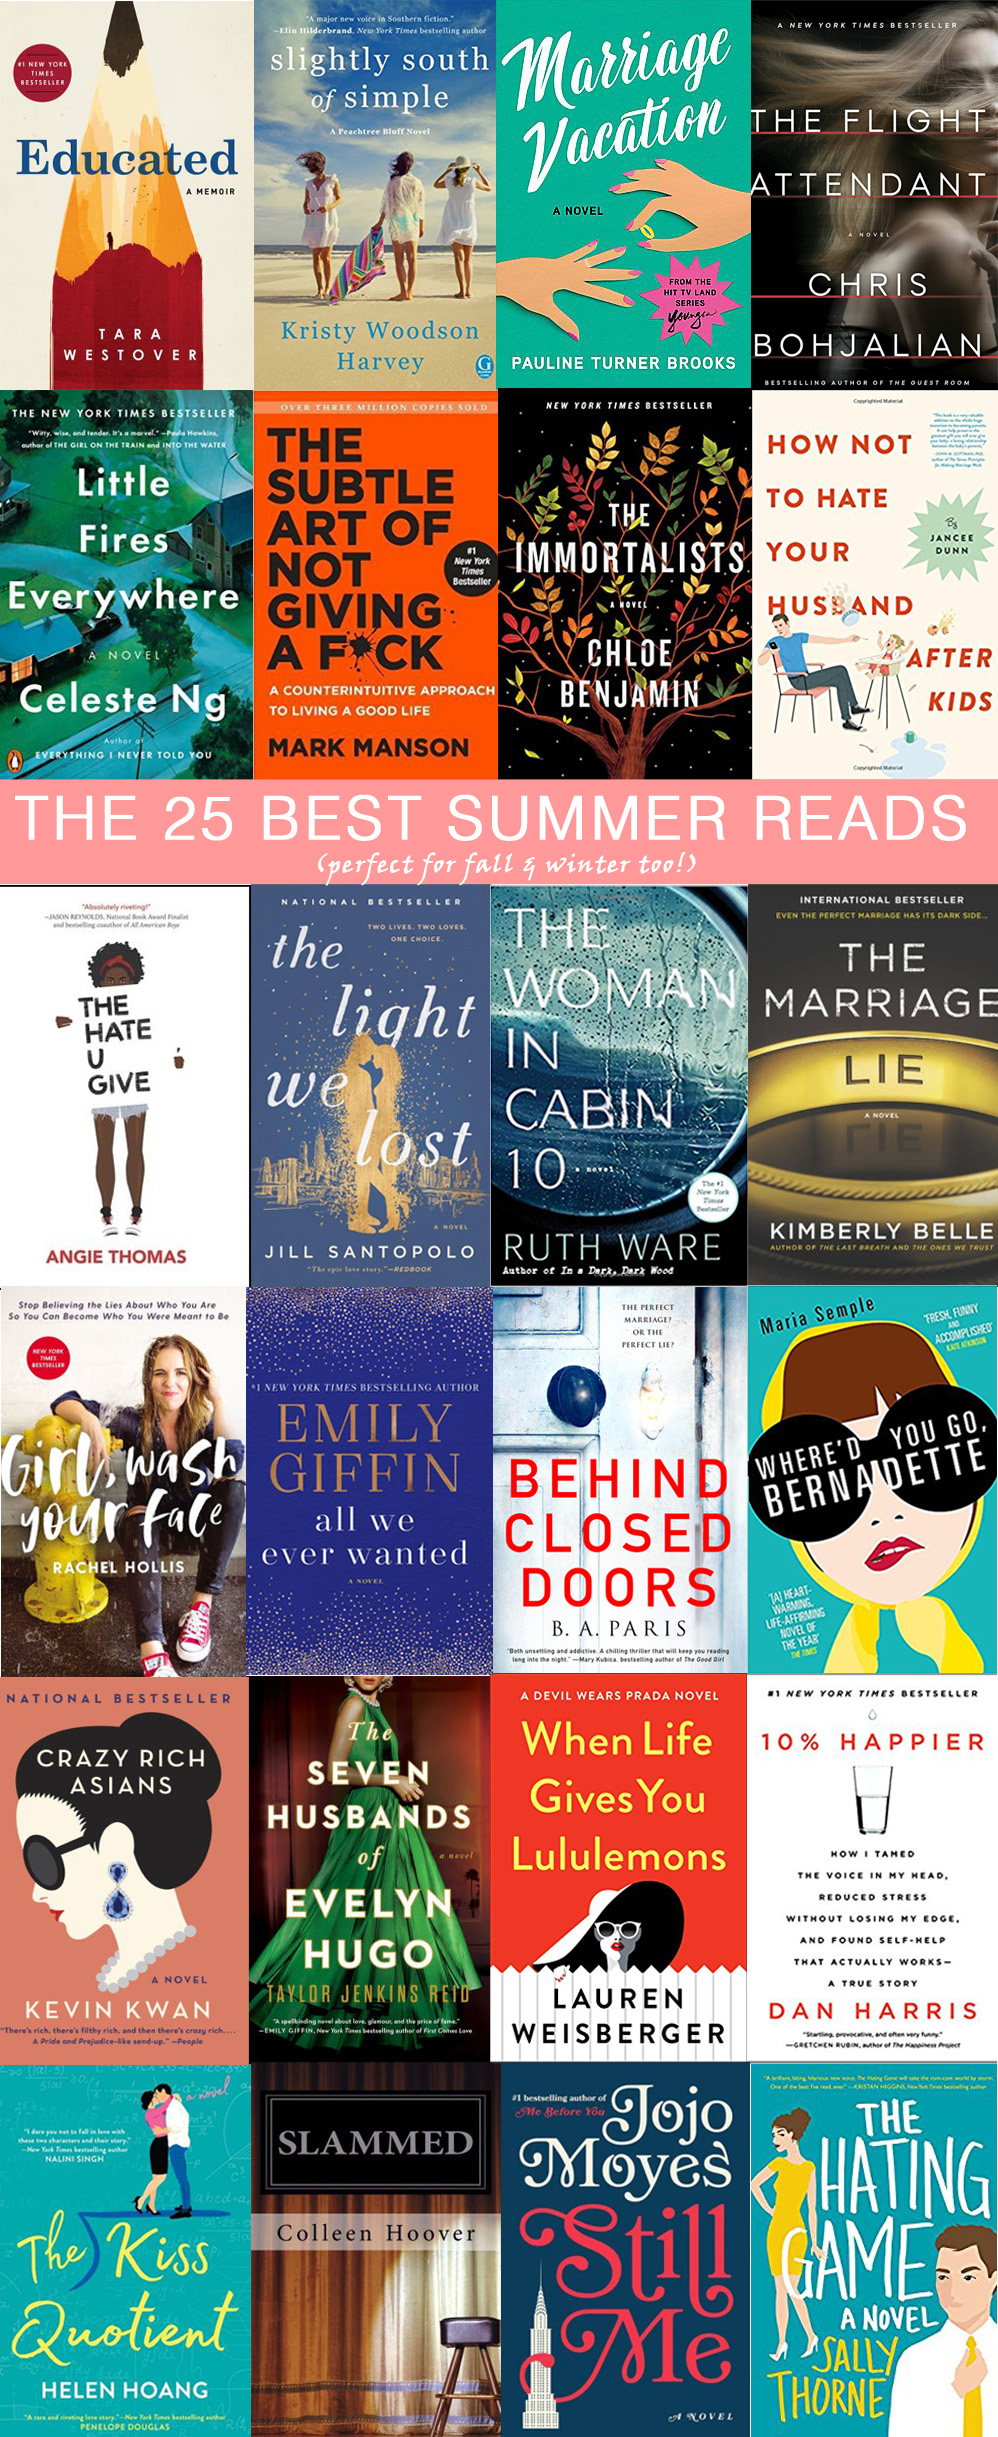 The 25 Best Books to Read this Summer (and into the fall, too!) // the modern savvy, a life & style blog - The 25 Best Summer Reads featured by popular Florida lifestyle blogger, The Modern Savvy